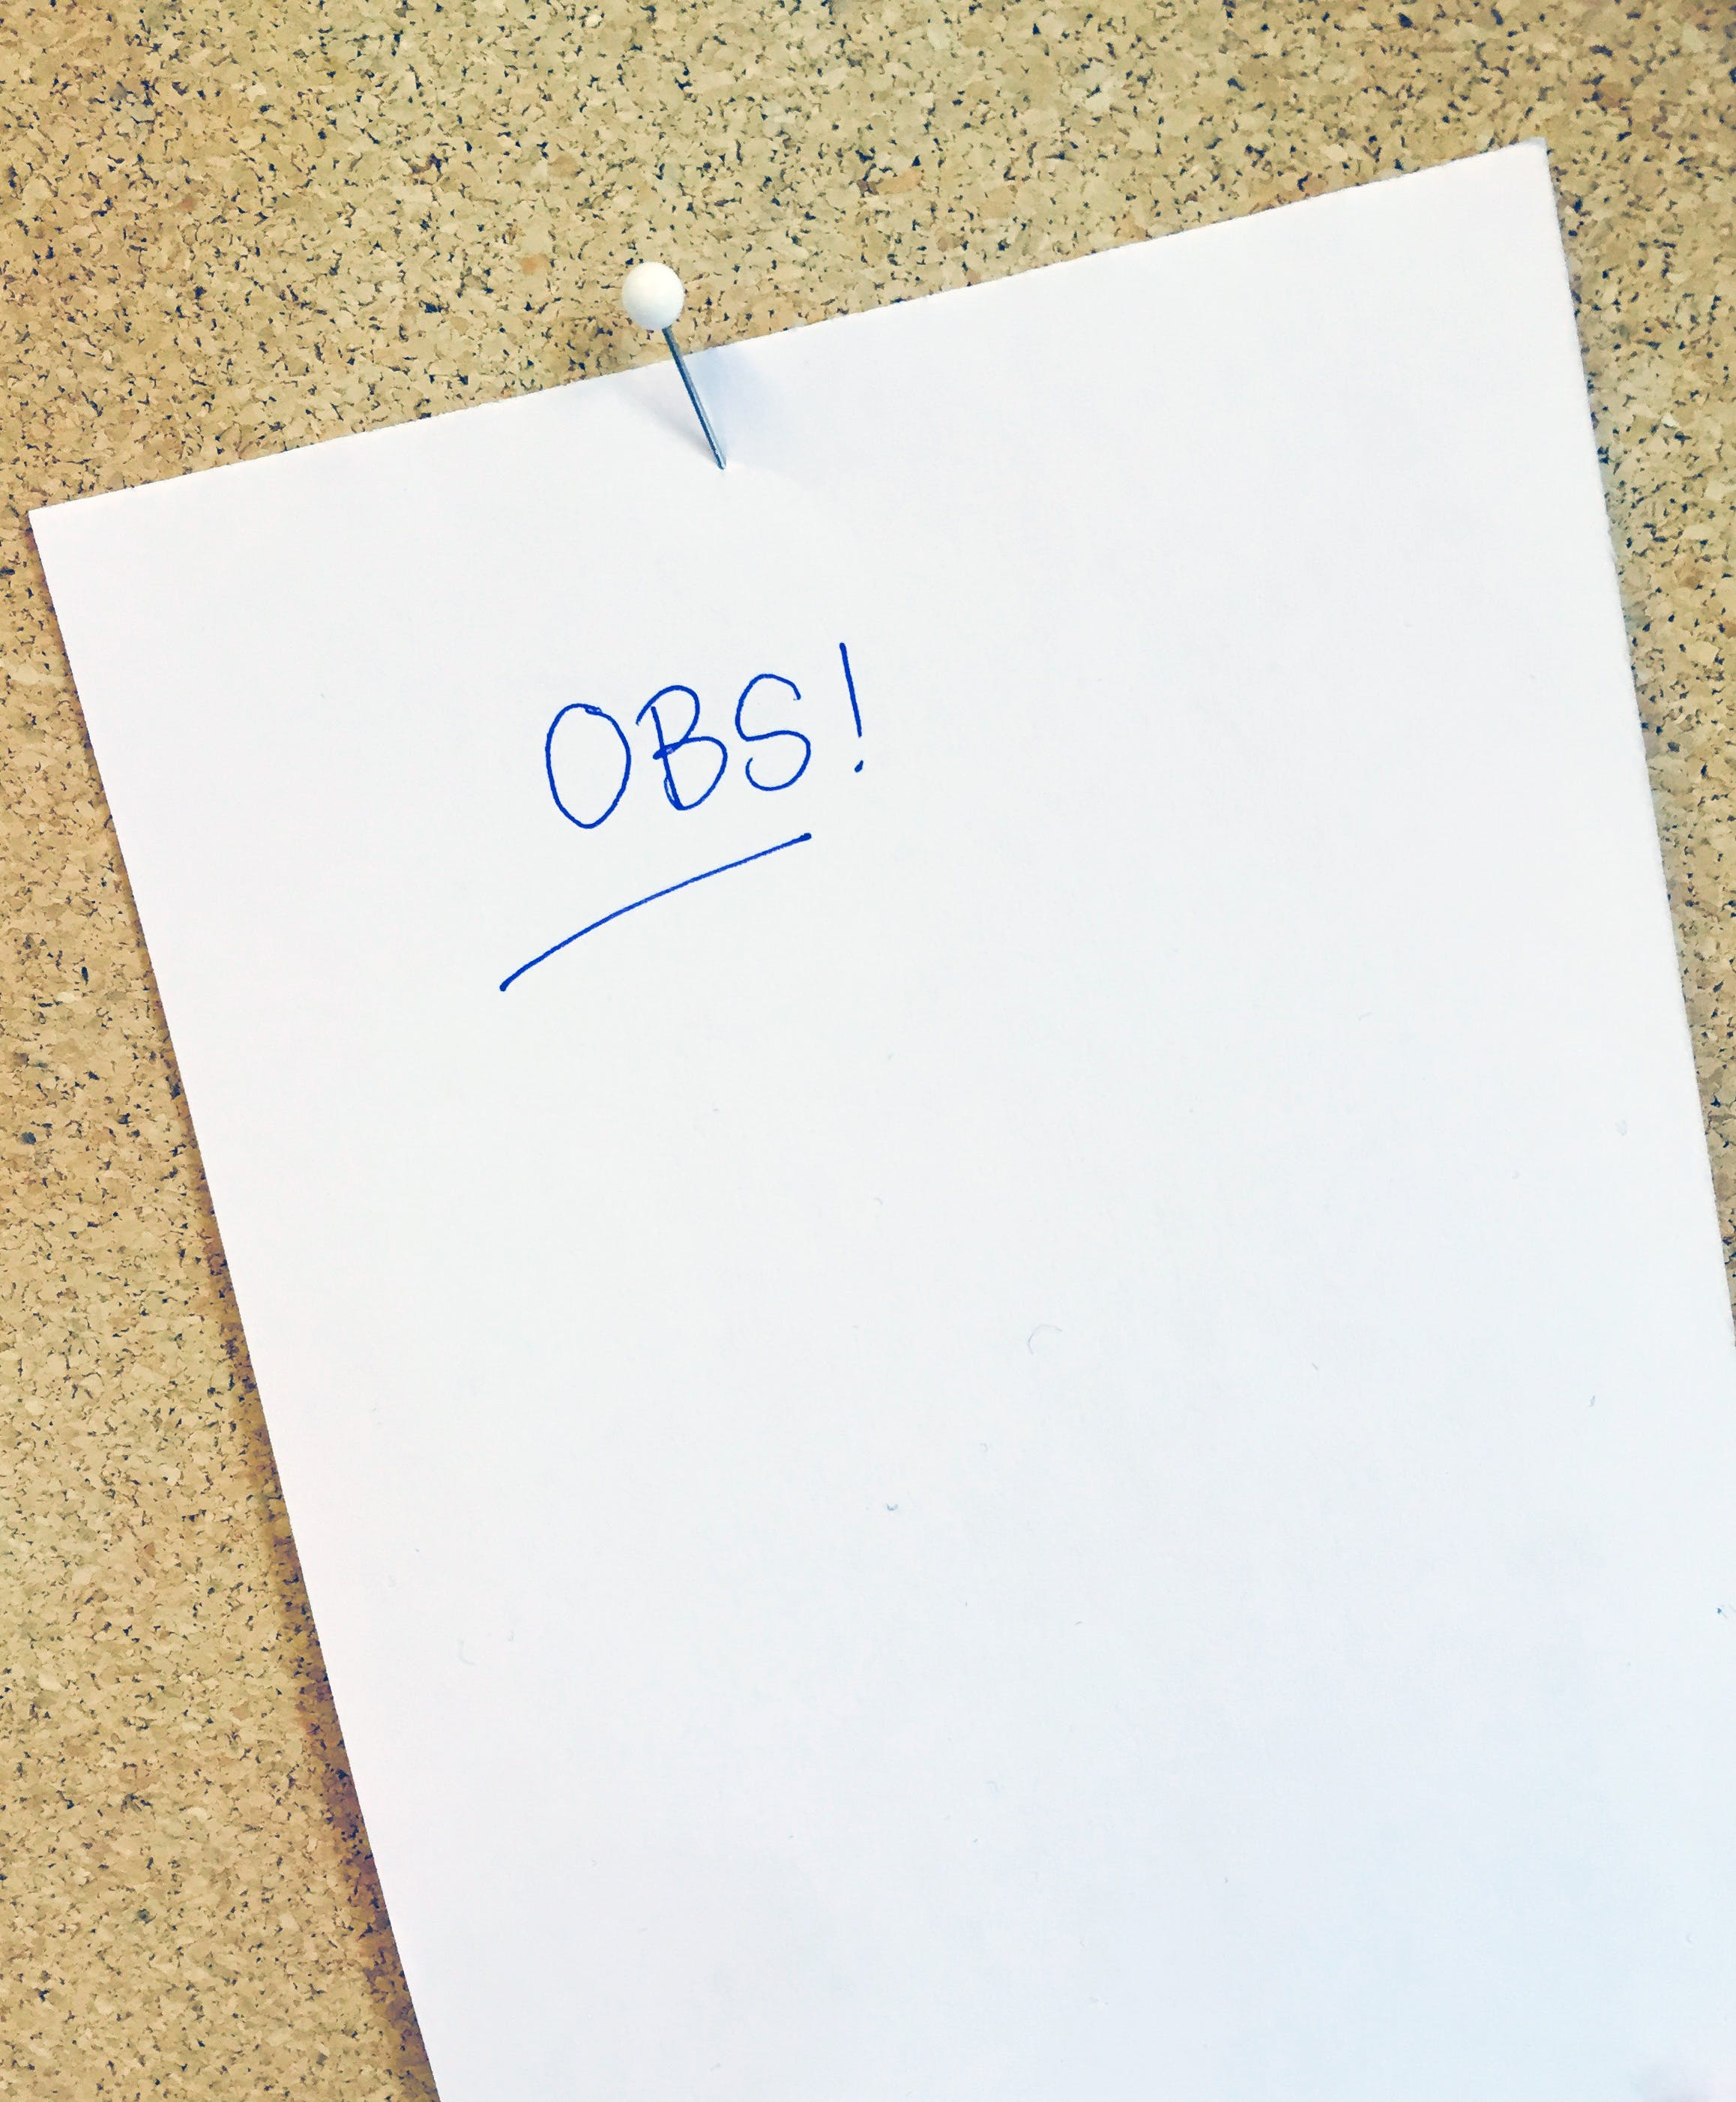 Obs Text on White Paper